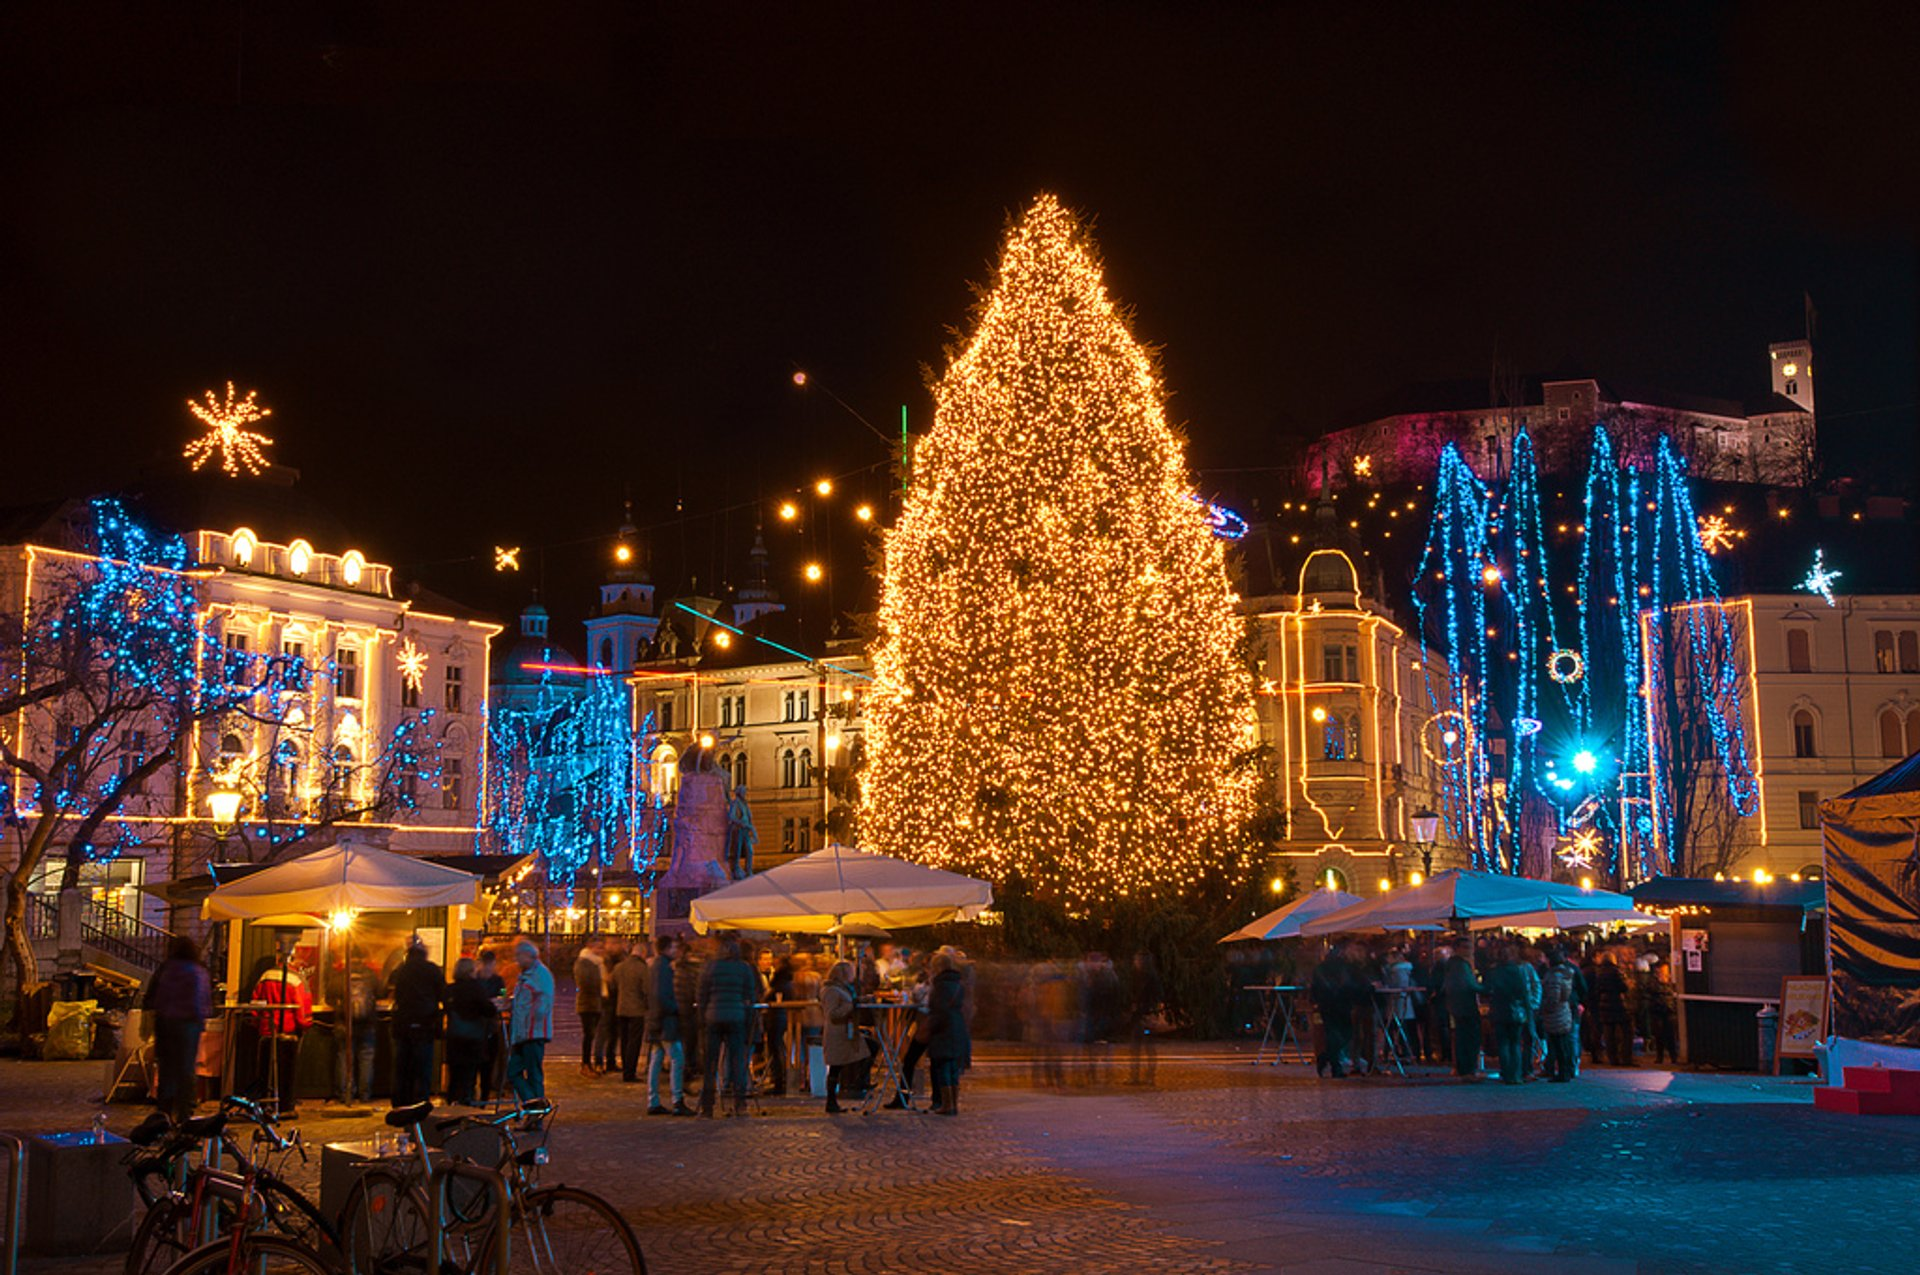 Ljubljana Old Town festive decorations 2020